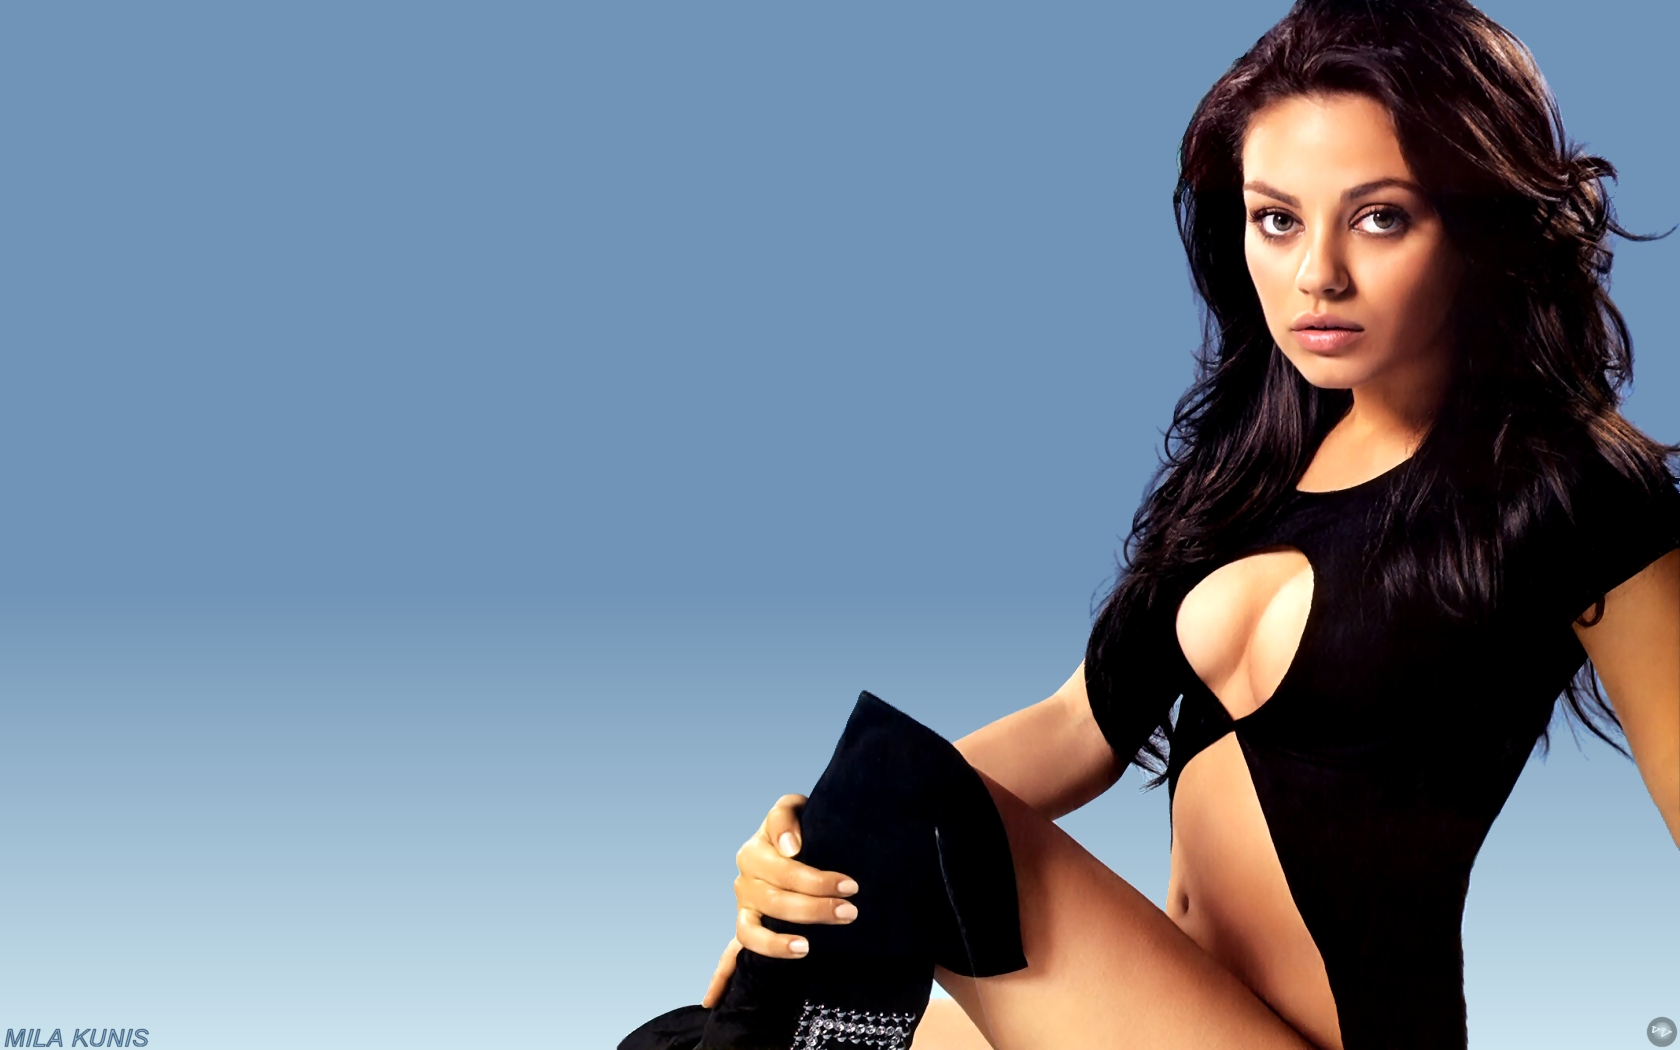 emo wb: mila kunis hot pictures mila kunis wallpapers website design